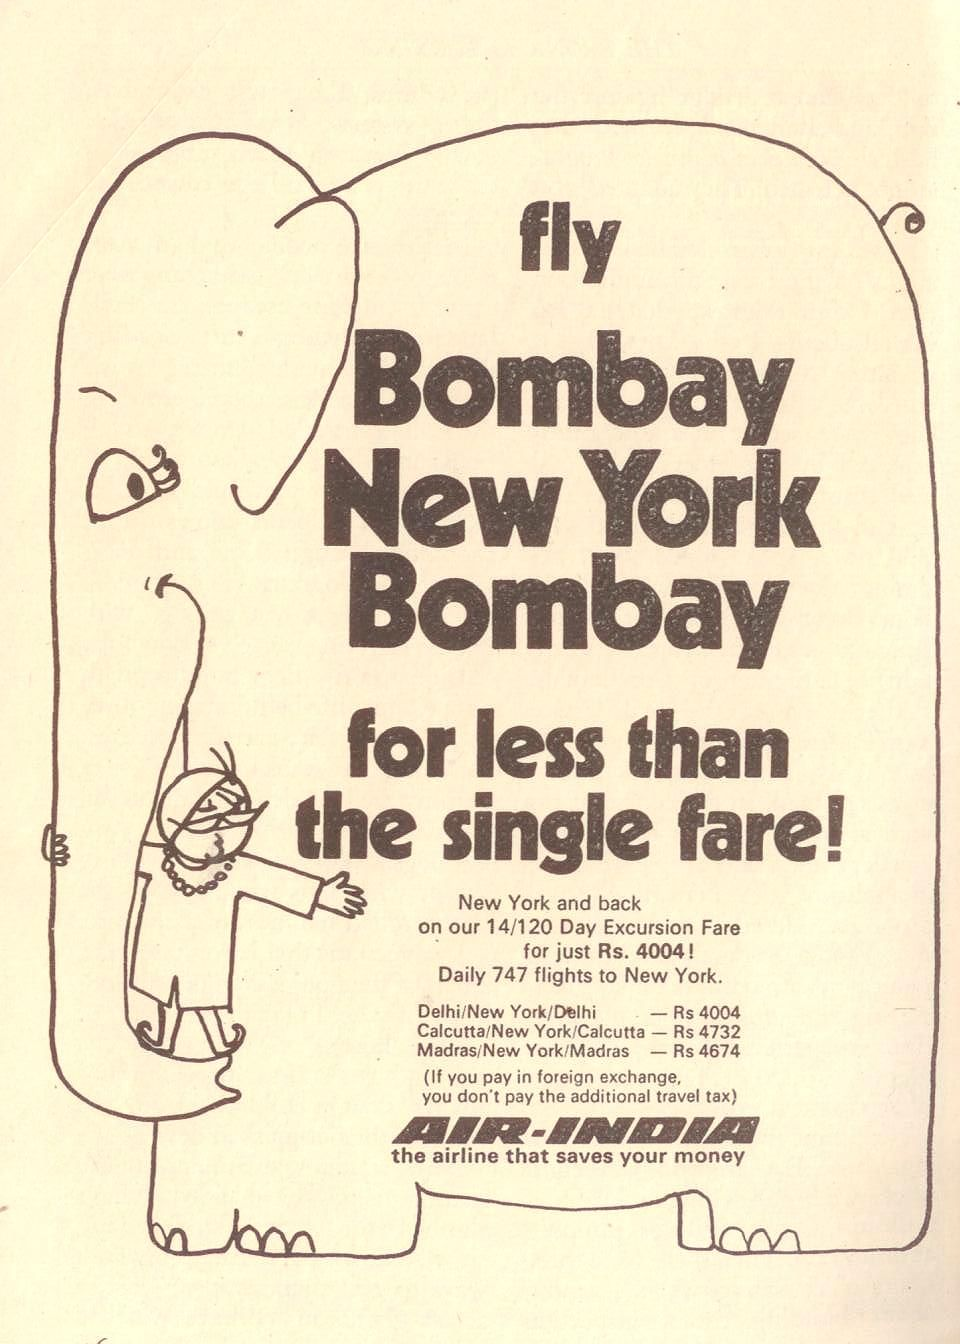 Time Was When Air India Was The Most Profitable Airline In The World